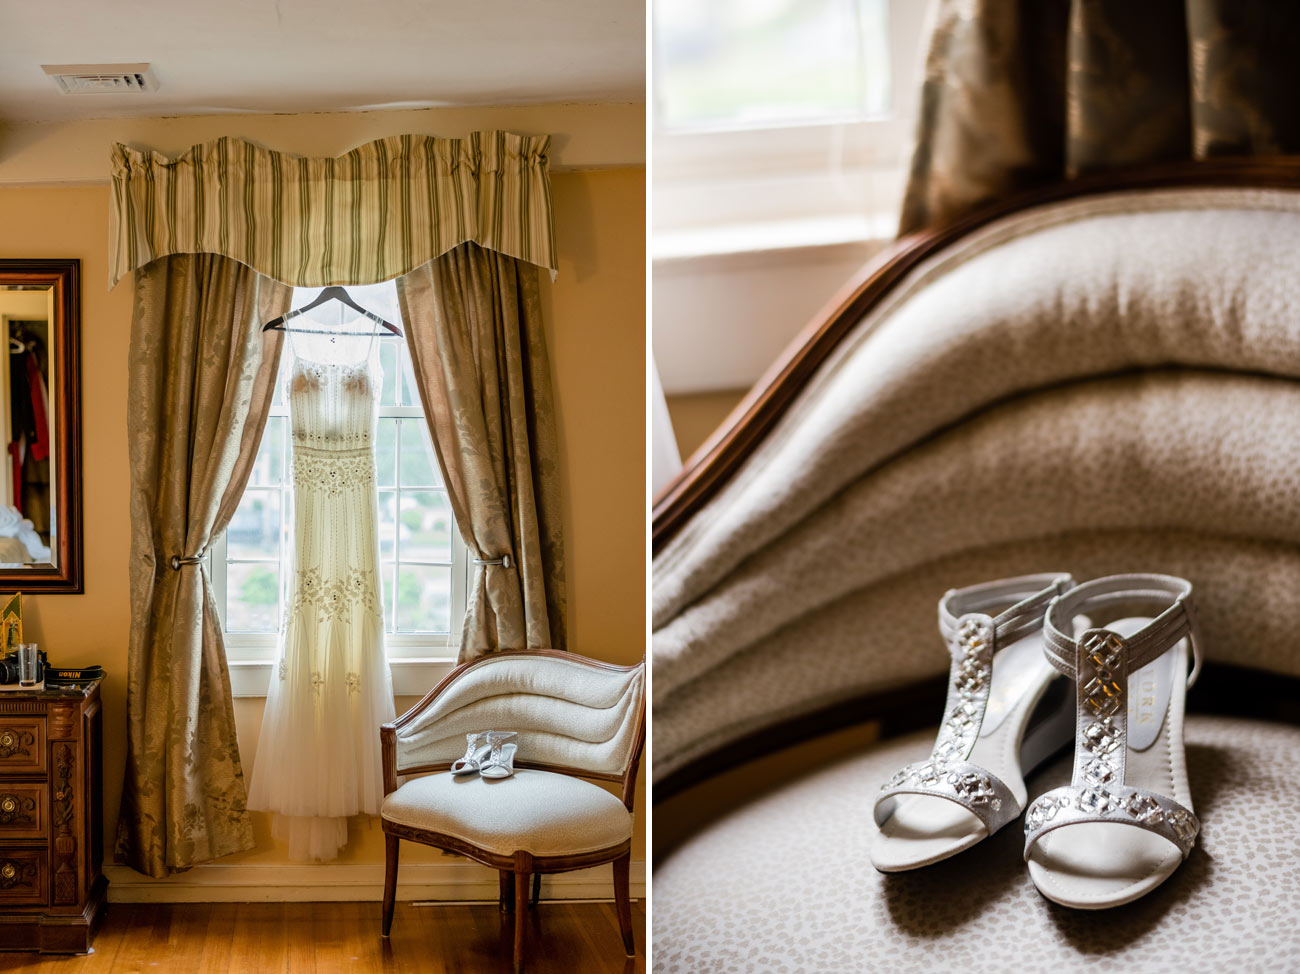 wedding elopement at the newcomb tavern house in sandwich cape cod weddings